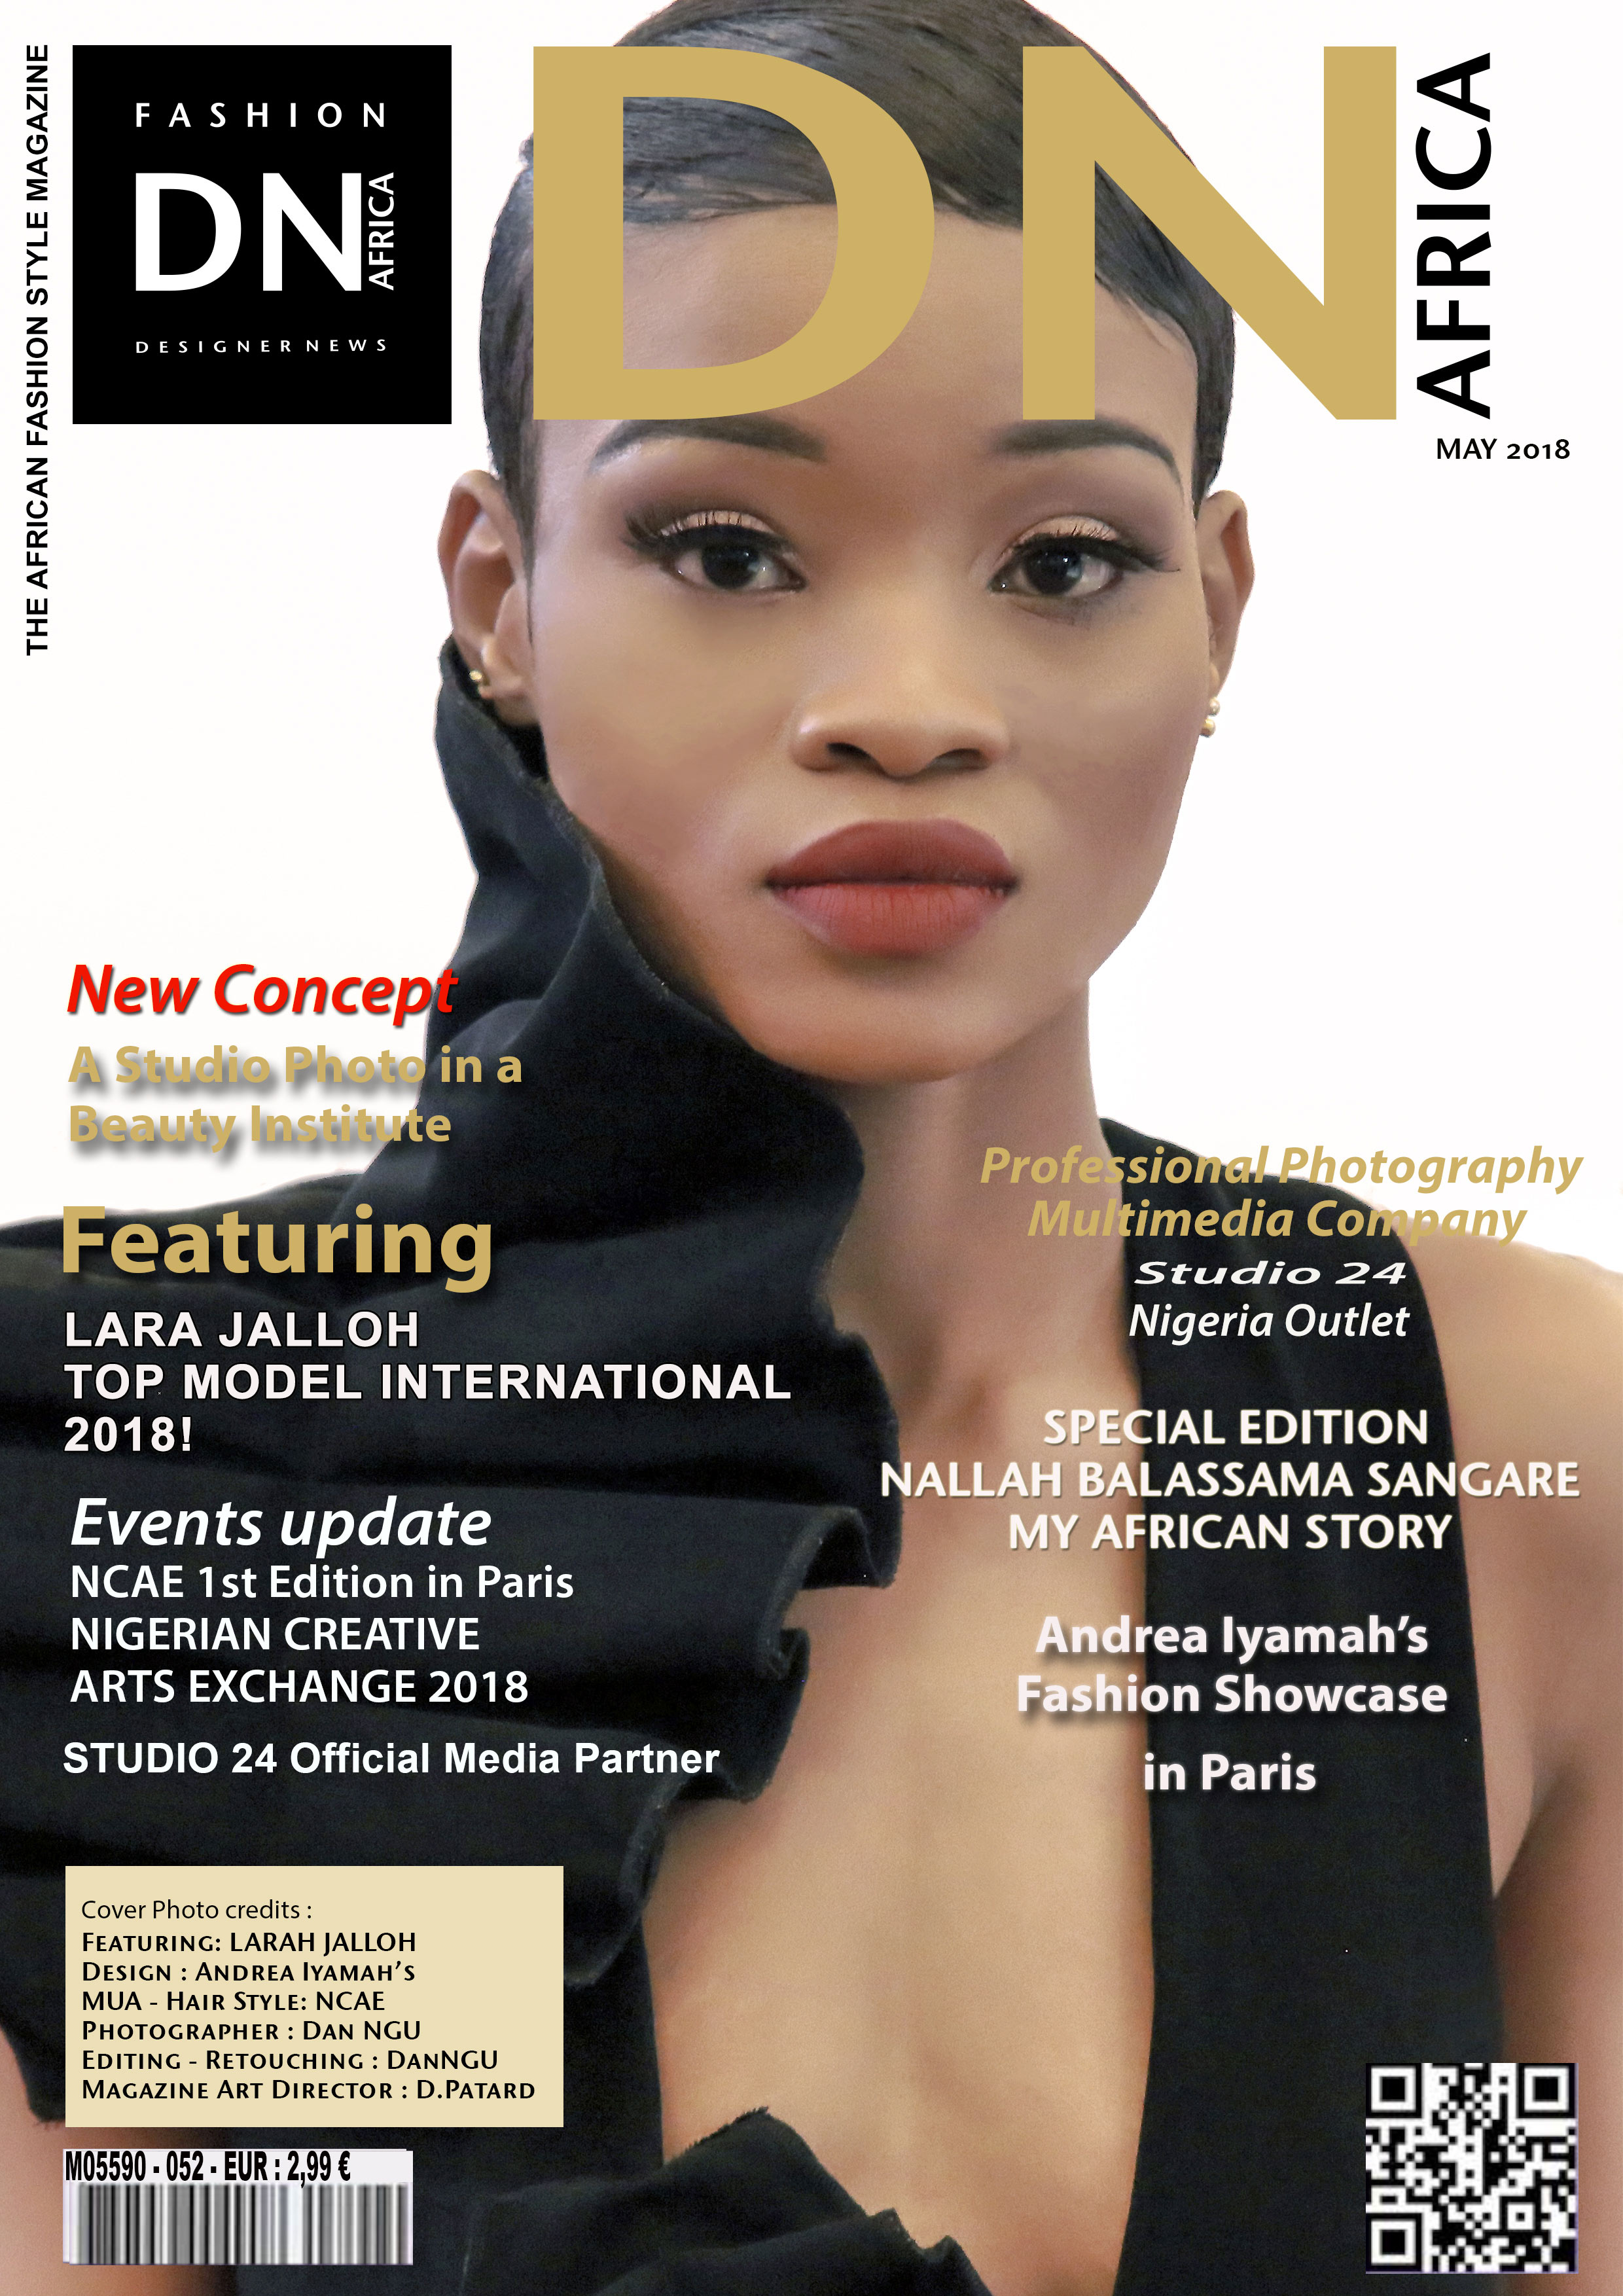 DNAFRICA-Cover-MAY 2018 Mag Number 52 Lara JALLOH - Designer Andrea Iyamah - NIGERIAN CREATIVE ARTS EXCHANGE 2018 = NCAE - Media Partner DN MAG, DN AFRICA -STUDIO 24 NIGERIA - STUDIO 24 INTERNATIONAL - DN MAG - Indirâh Events & Communication